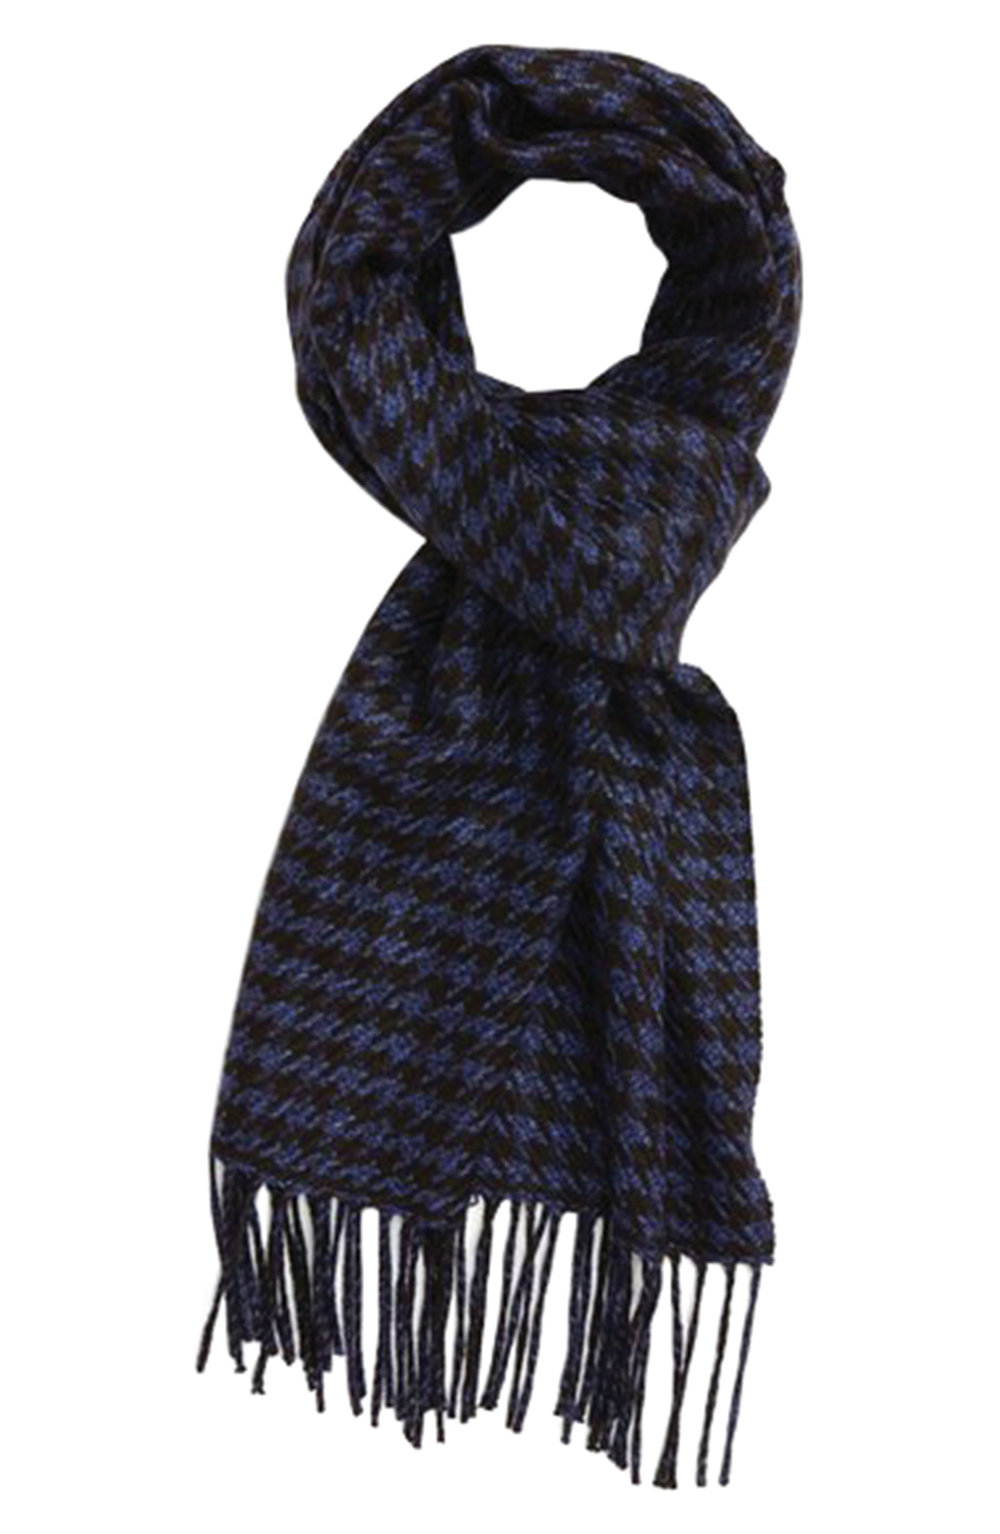 3.Houndstooth Silk & Cashmere Scarf by Canali $290,  nordstrom.com